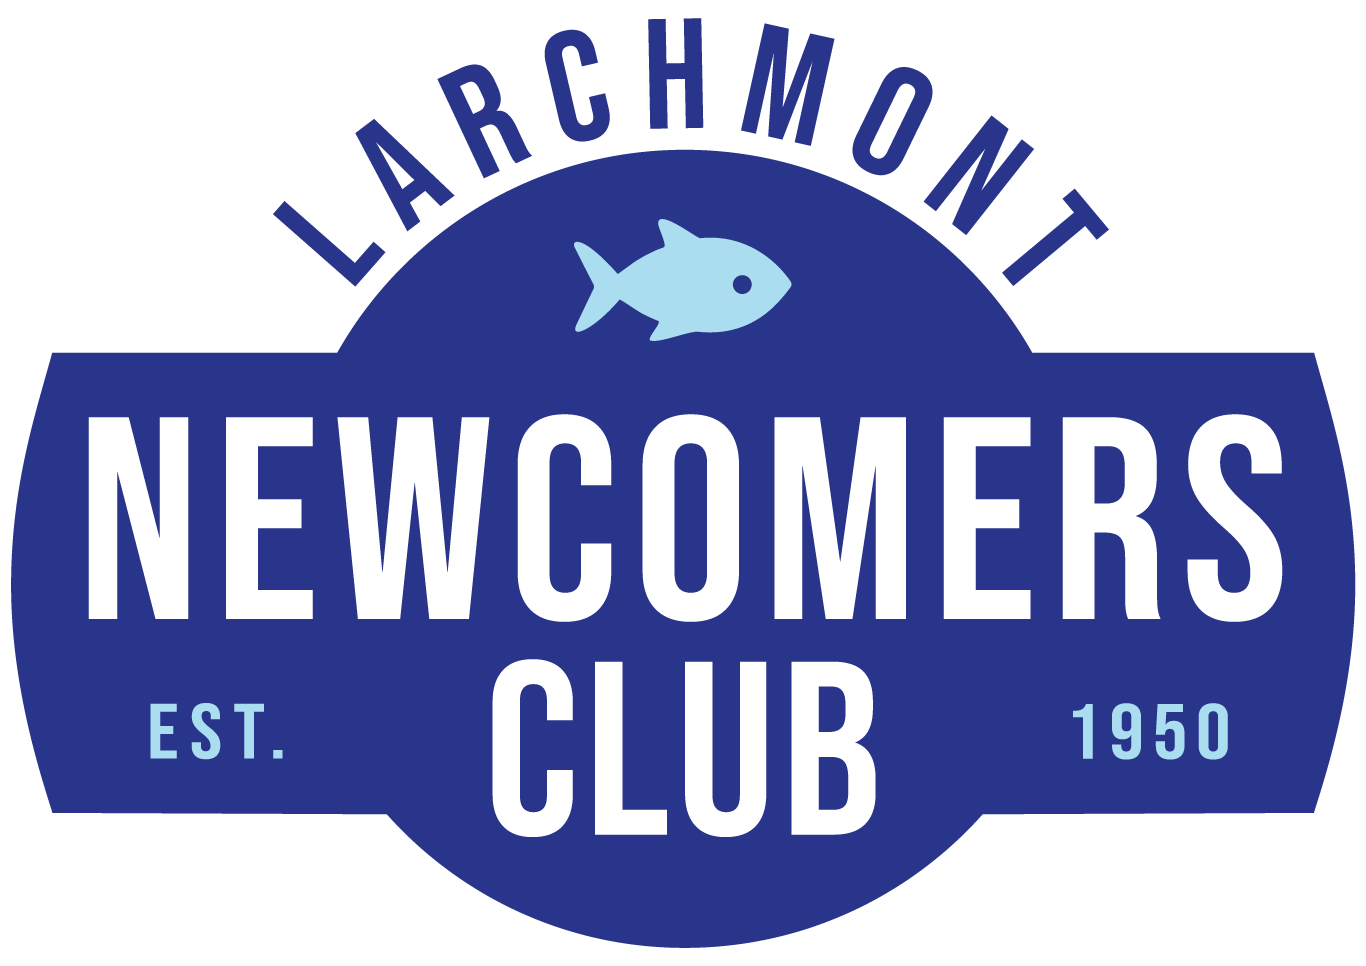 GENERAL INFORMATION – Larchmont Newcomers Club